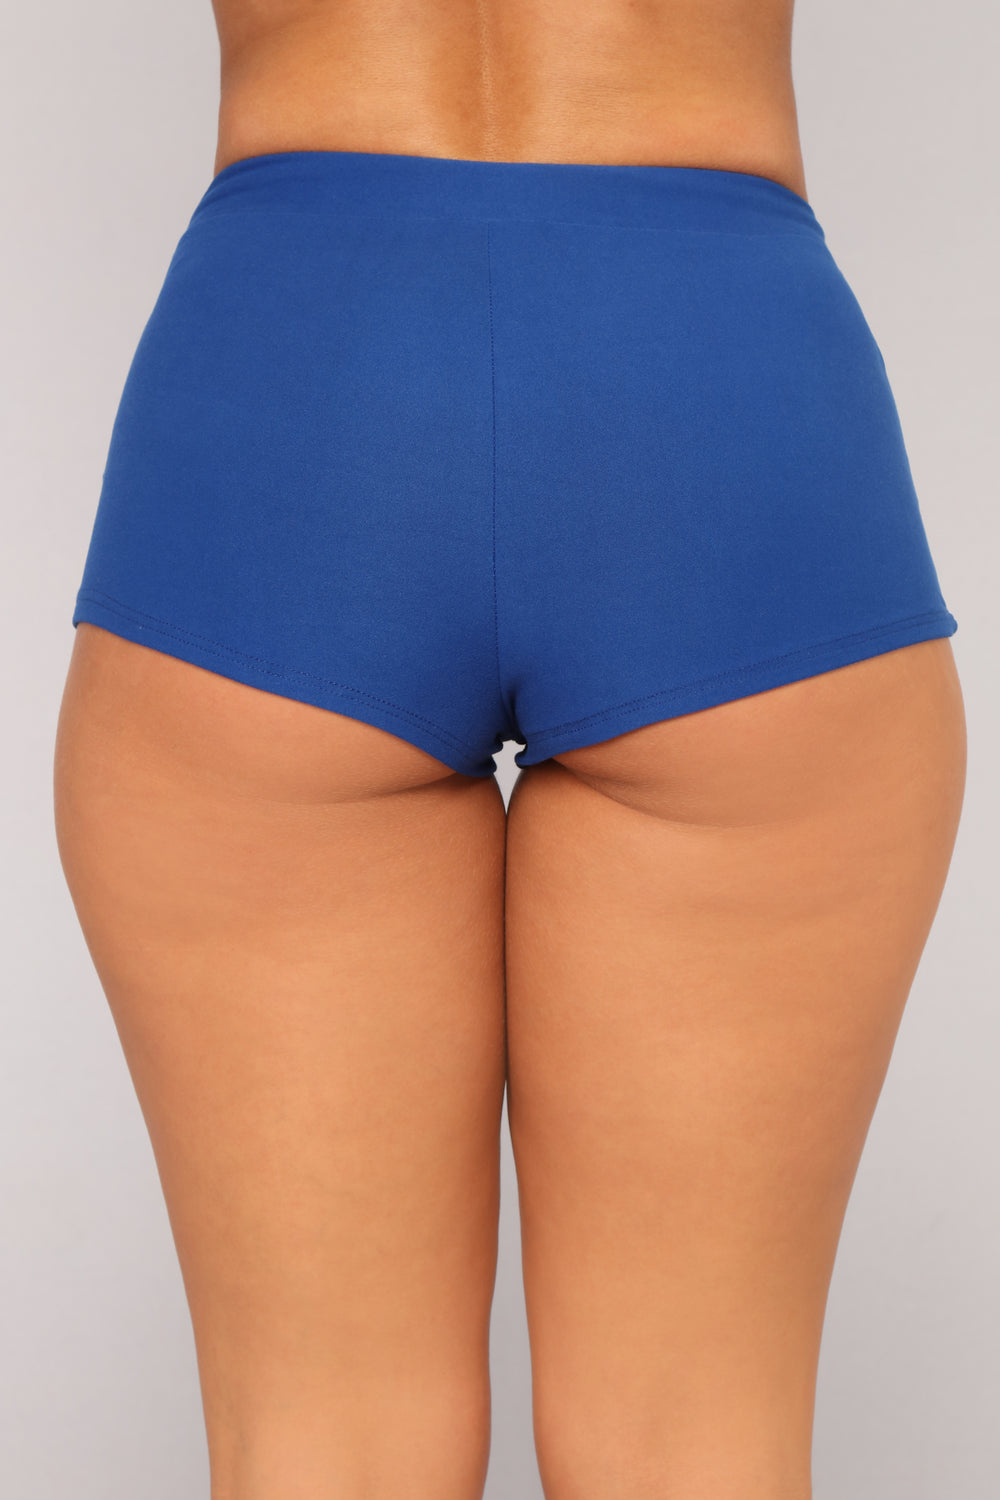 Play A Game Of Tennis Short Set - Royal/White